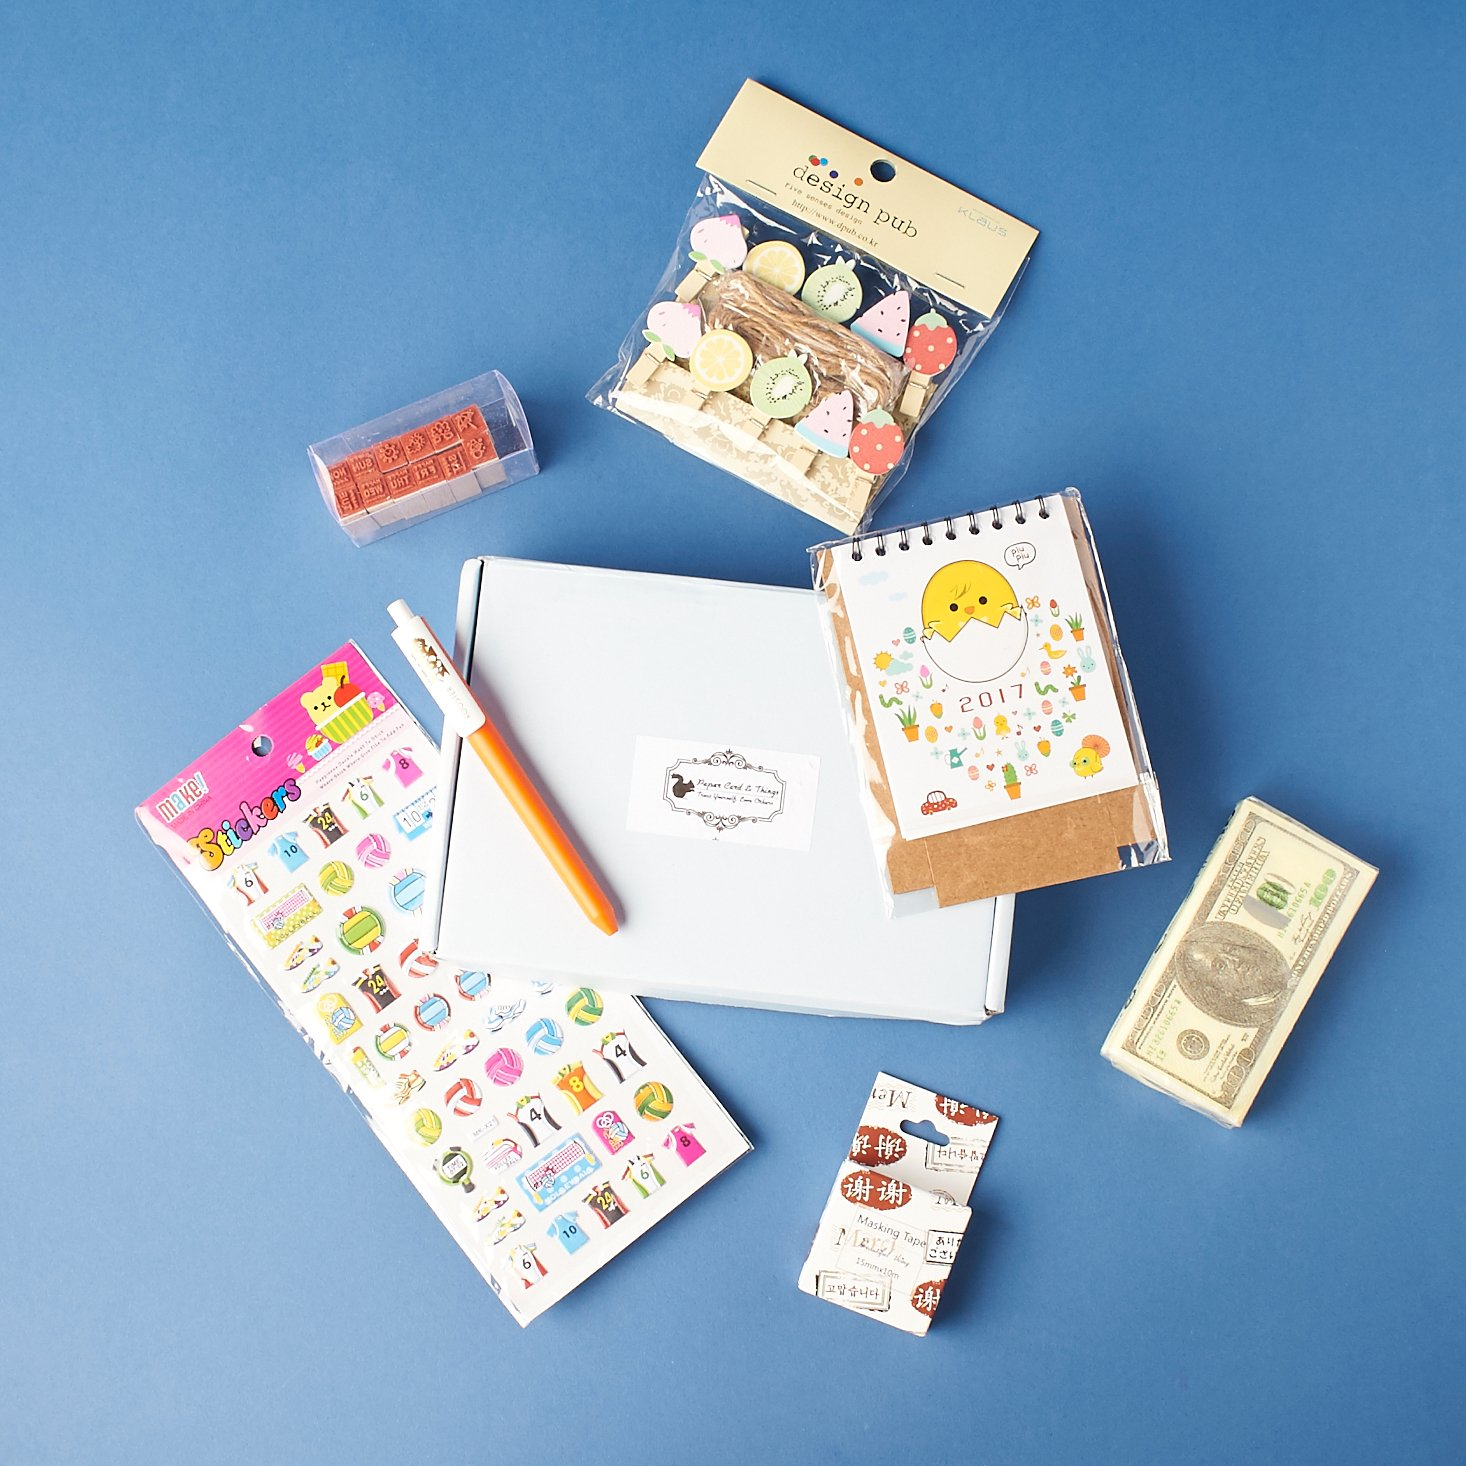 Read our review of the January 2017 Paper Card & Things box!